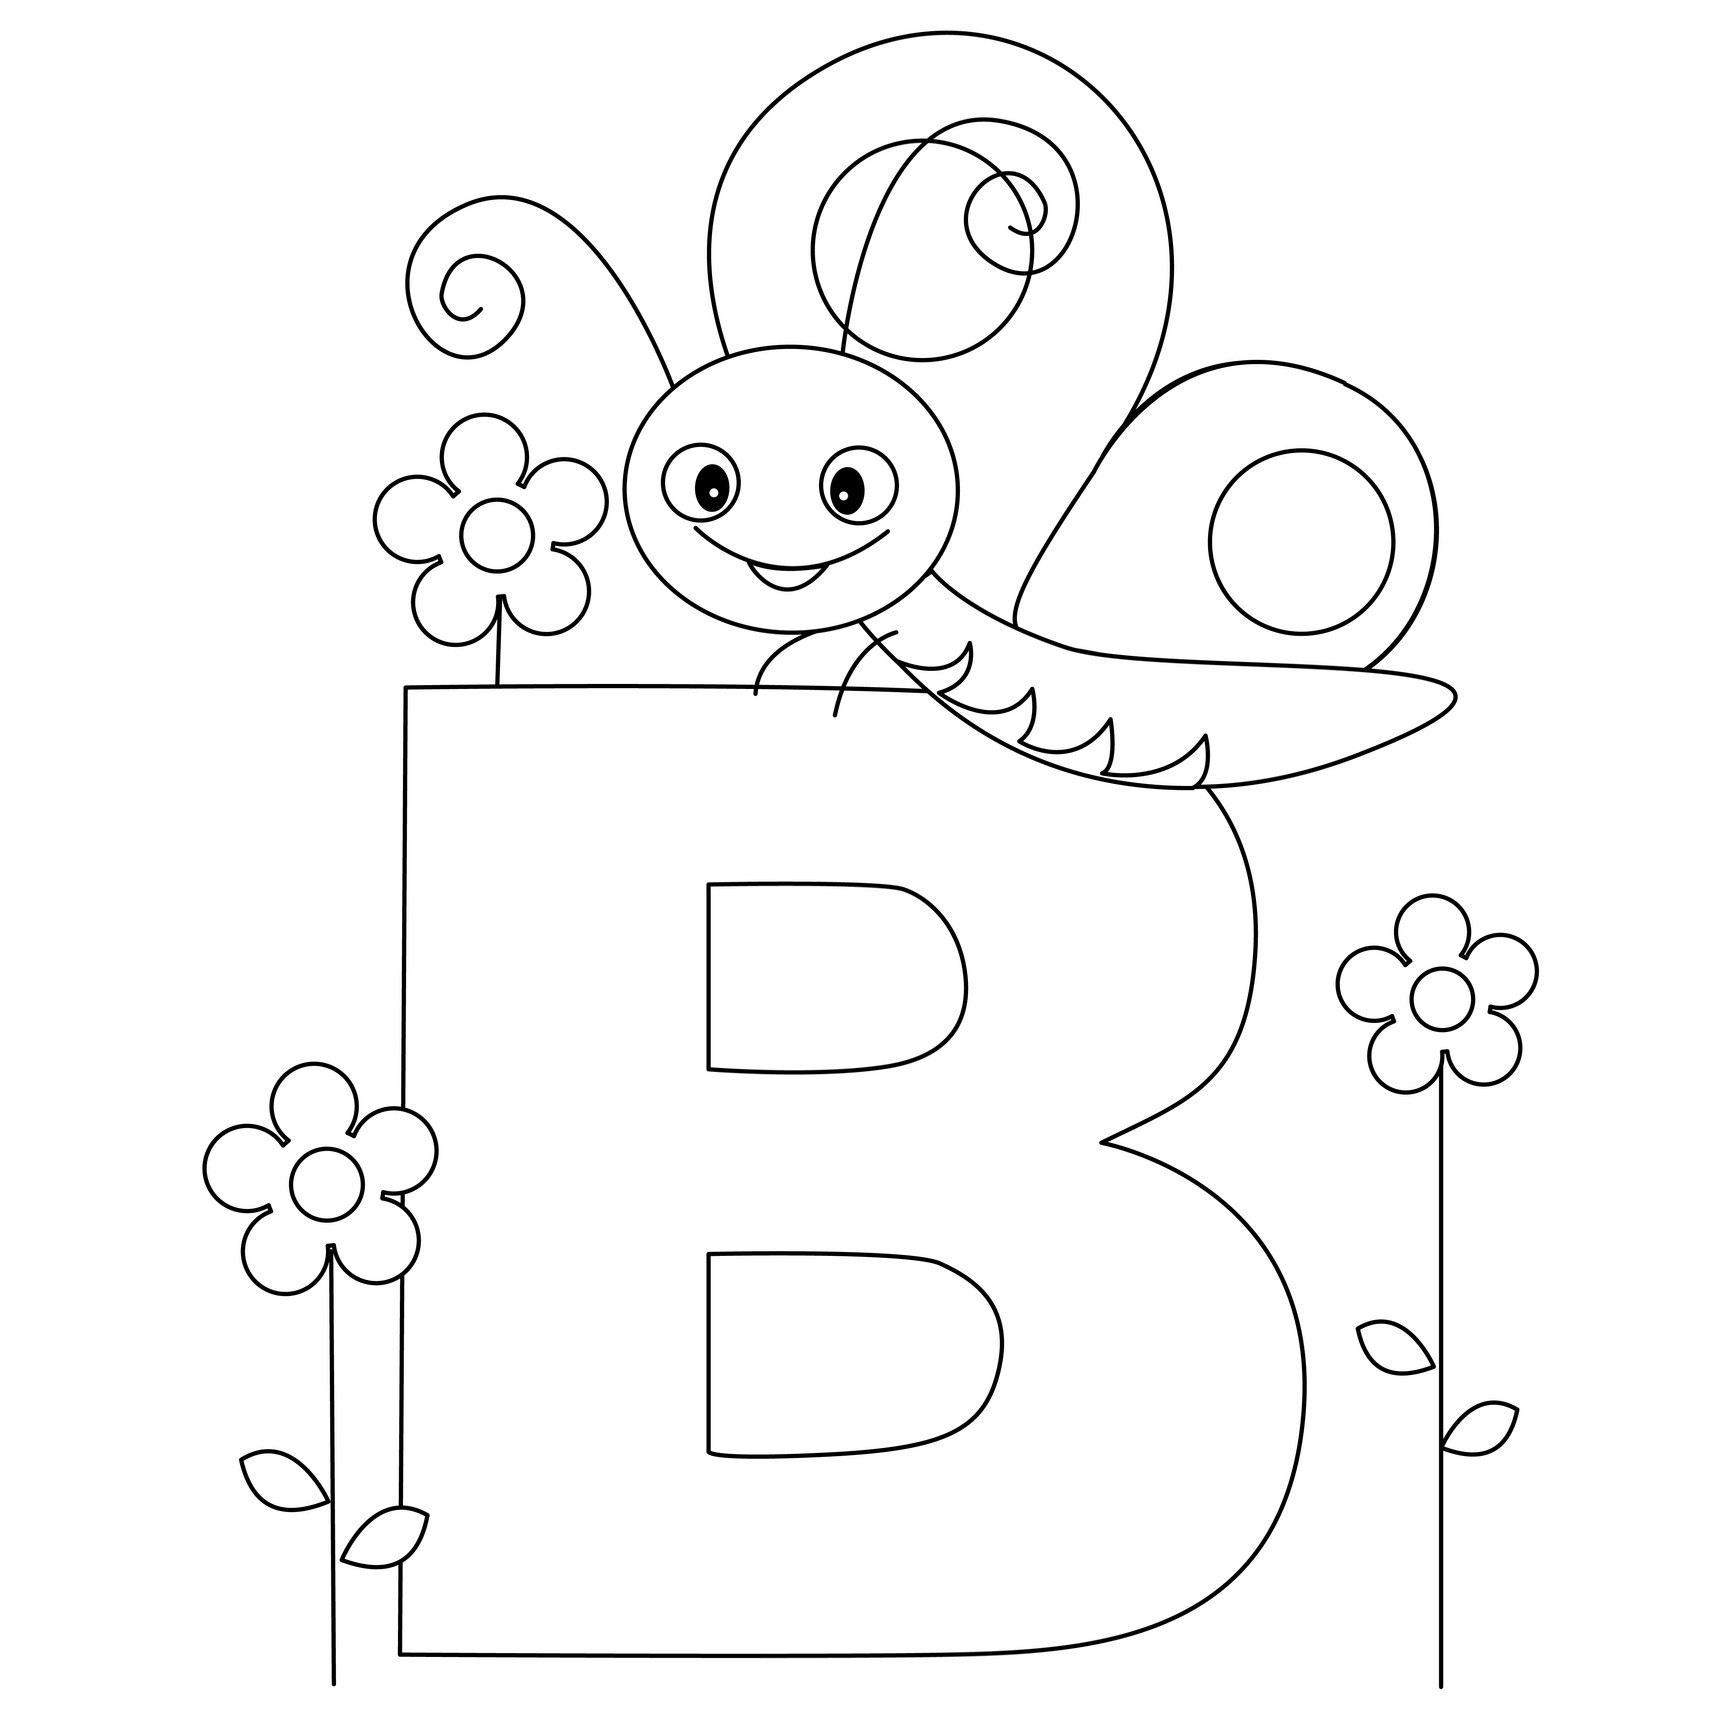 Alphabet Coloring Pages N : Free printable alphabet coloring pages for kids best